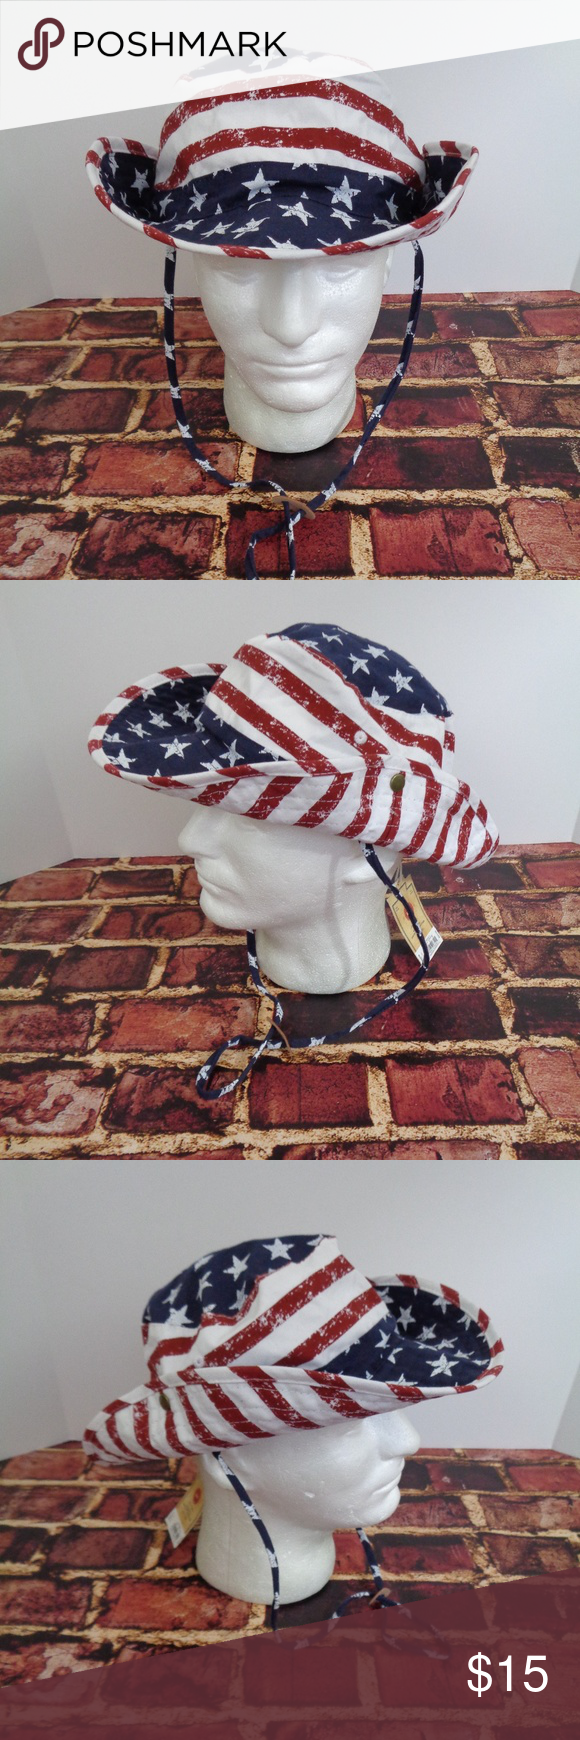 e3026cefef9 Urban Pipeline USA Flag Bucket Floppy Hat L XL This is a new with tags